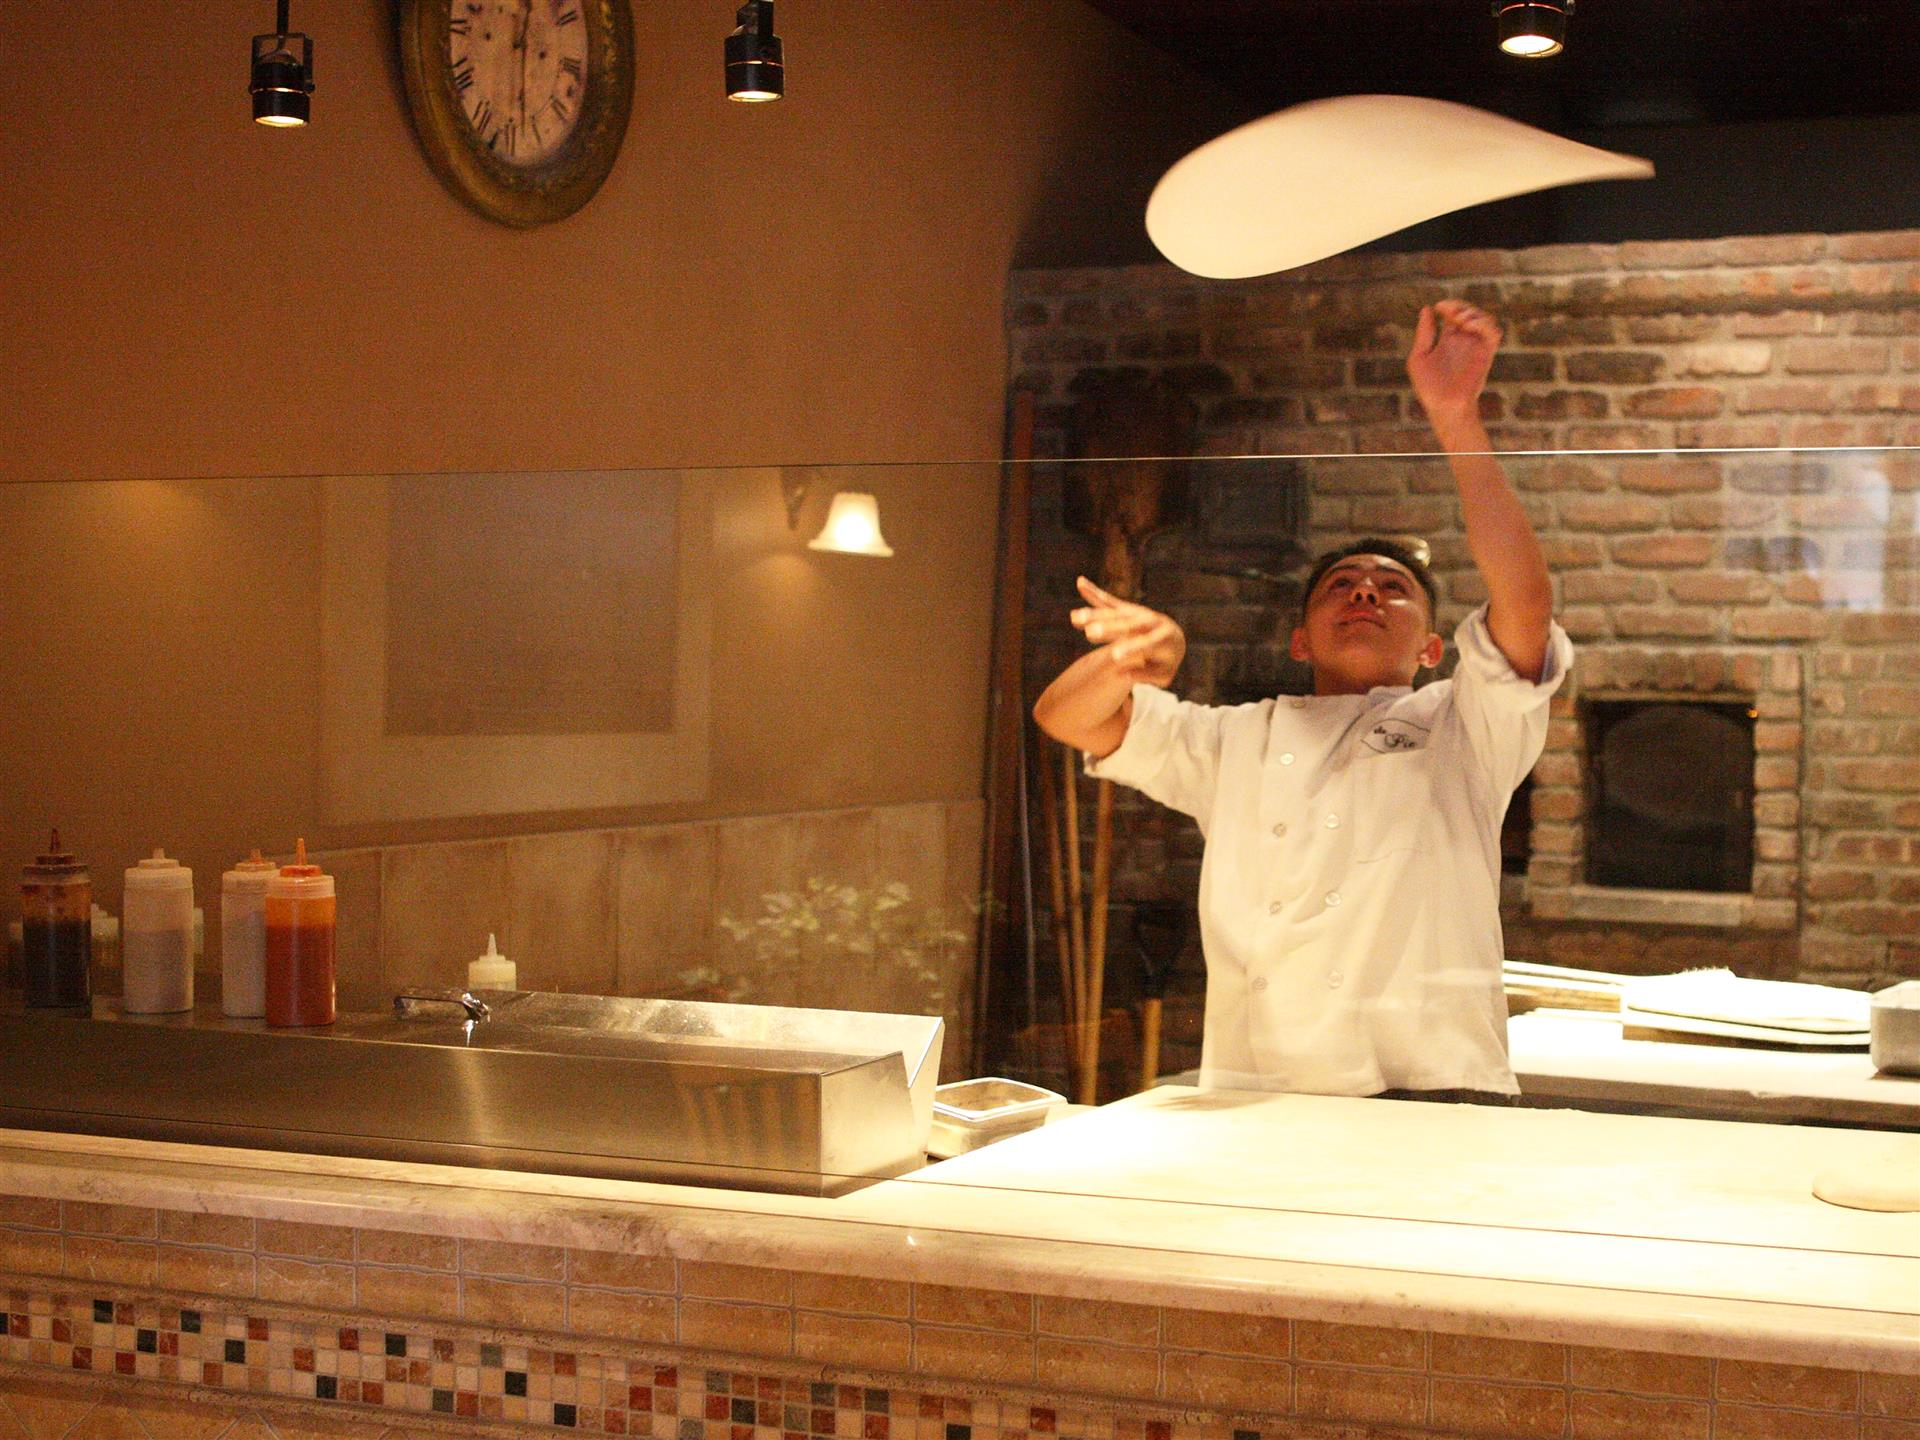 pizza man throwing dough in air